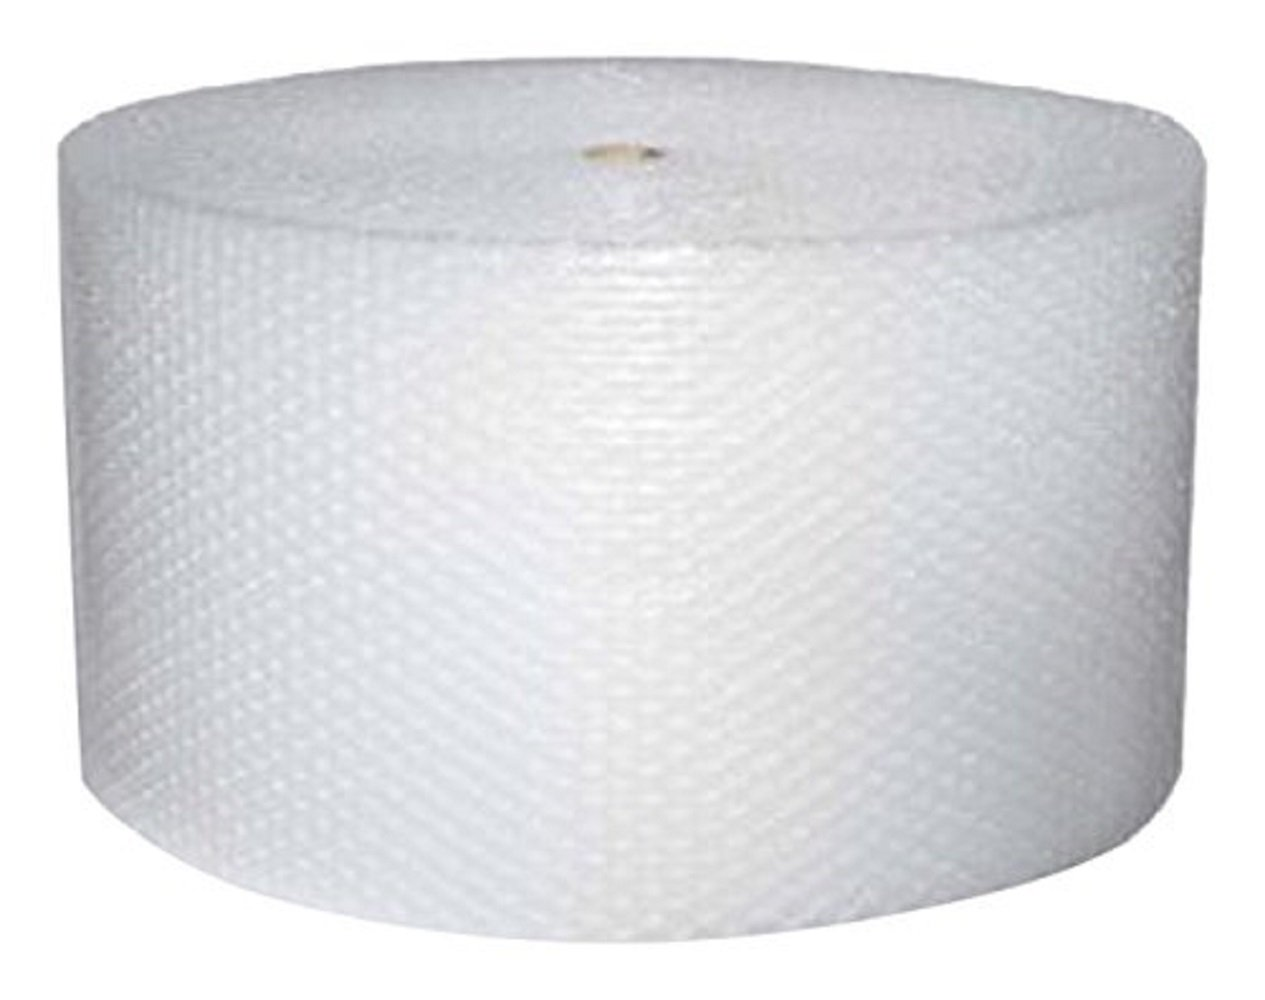 PolyBubble 175' Bubble Roll 3/16'' x 12'' Small Bubbles Perforated 12''